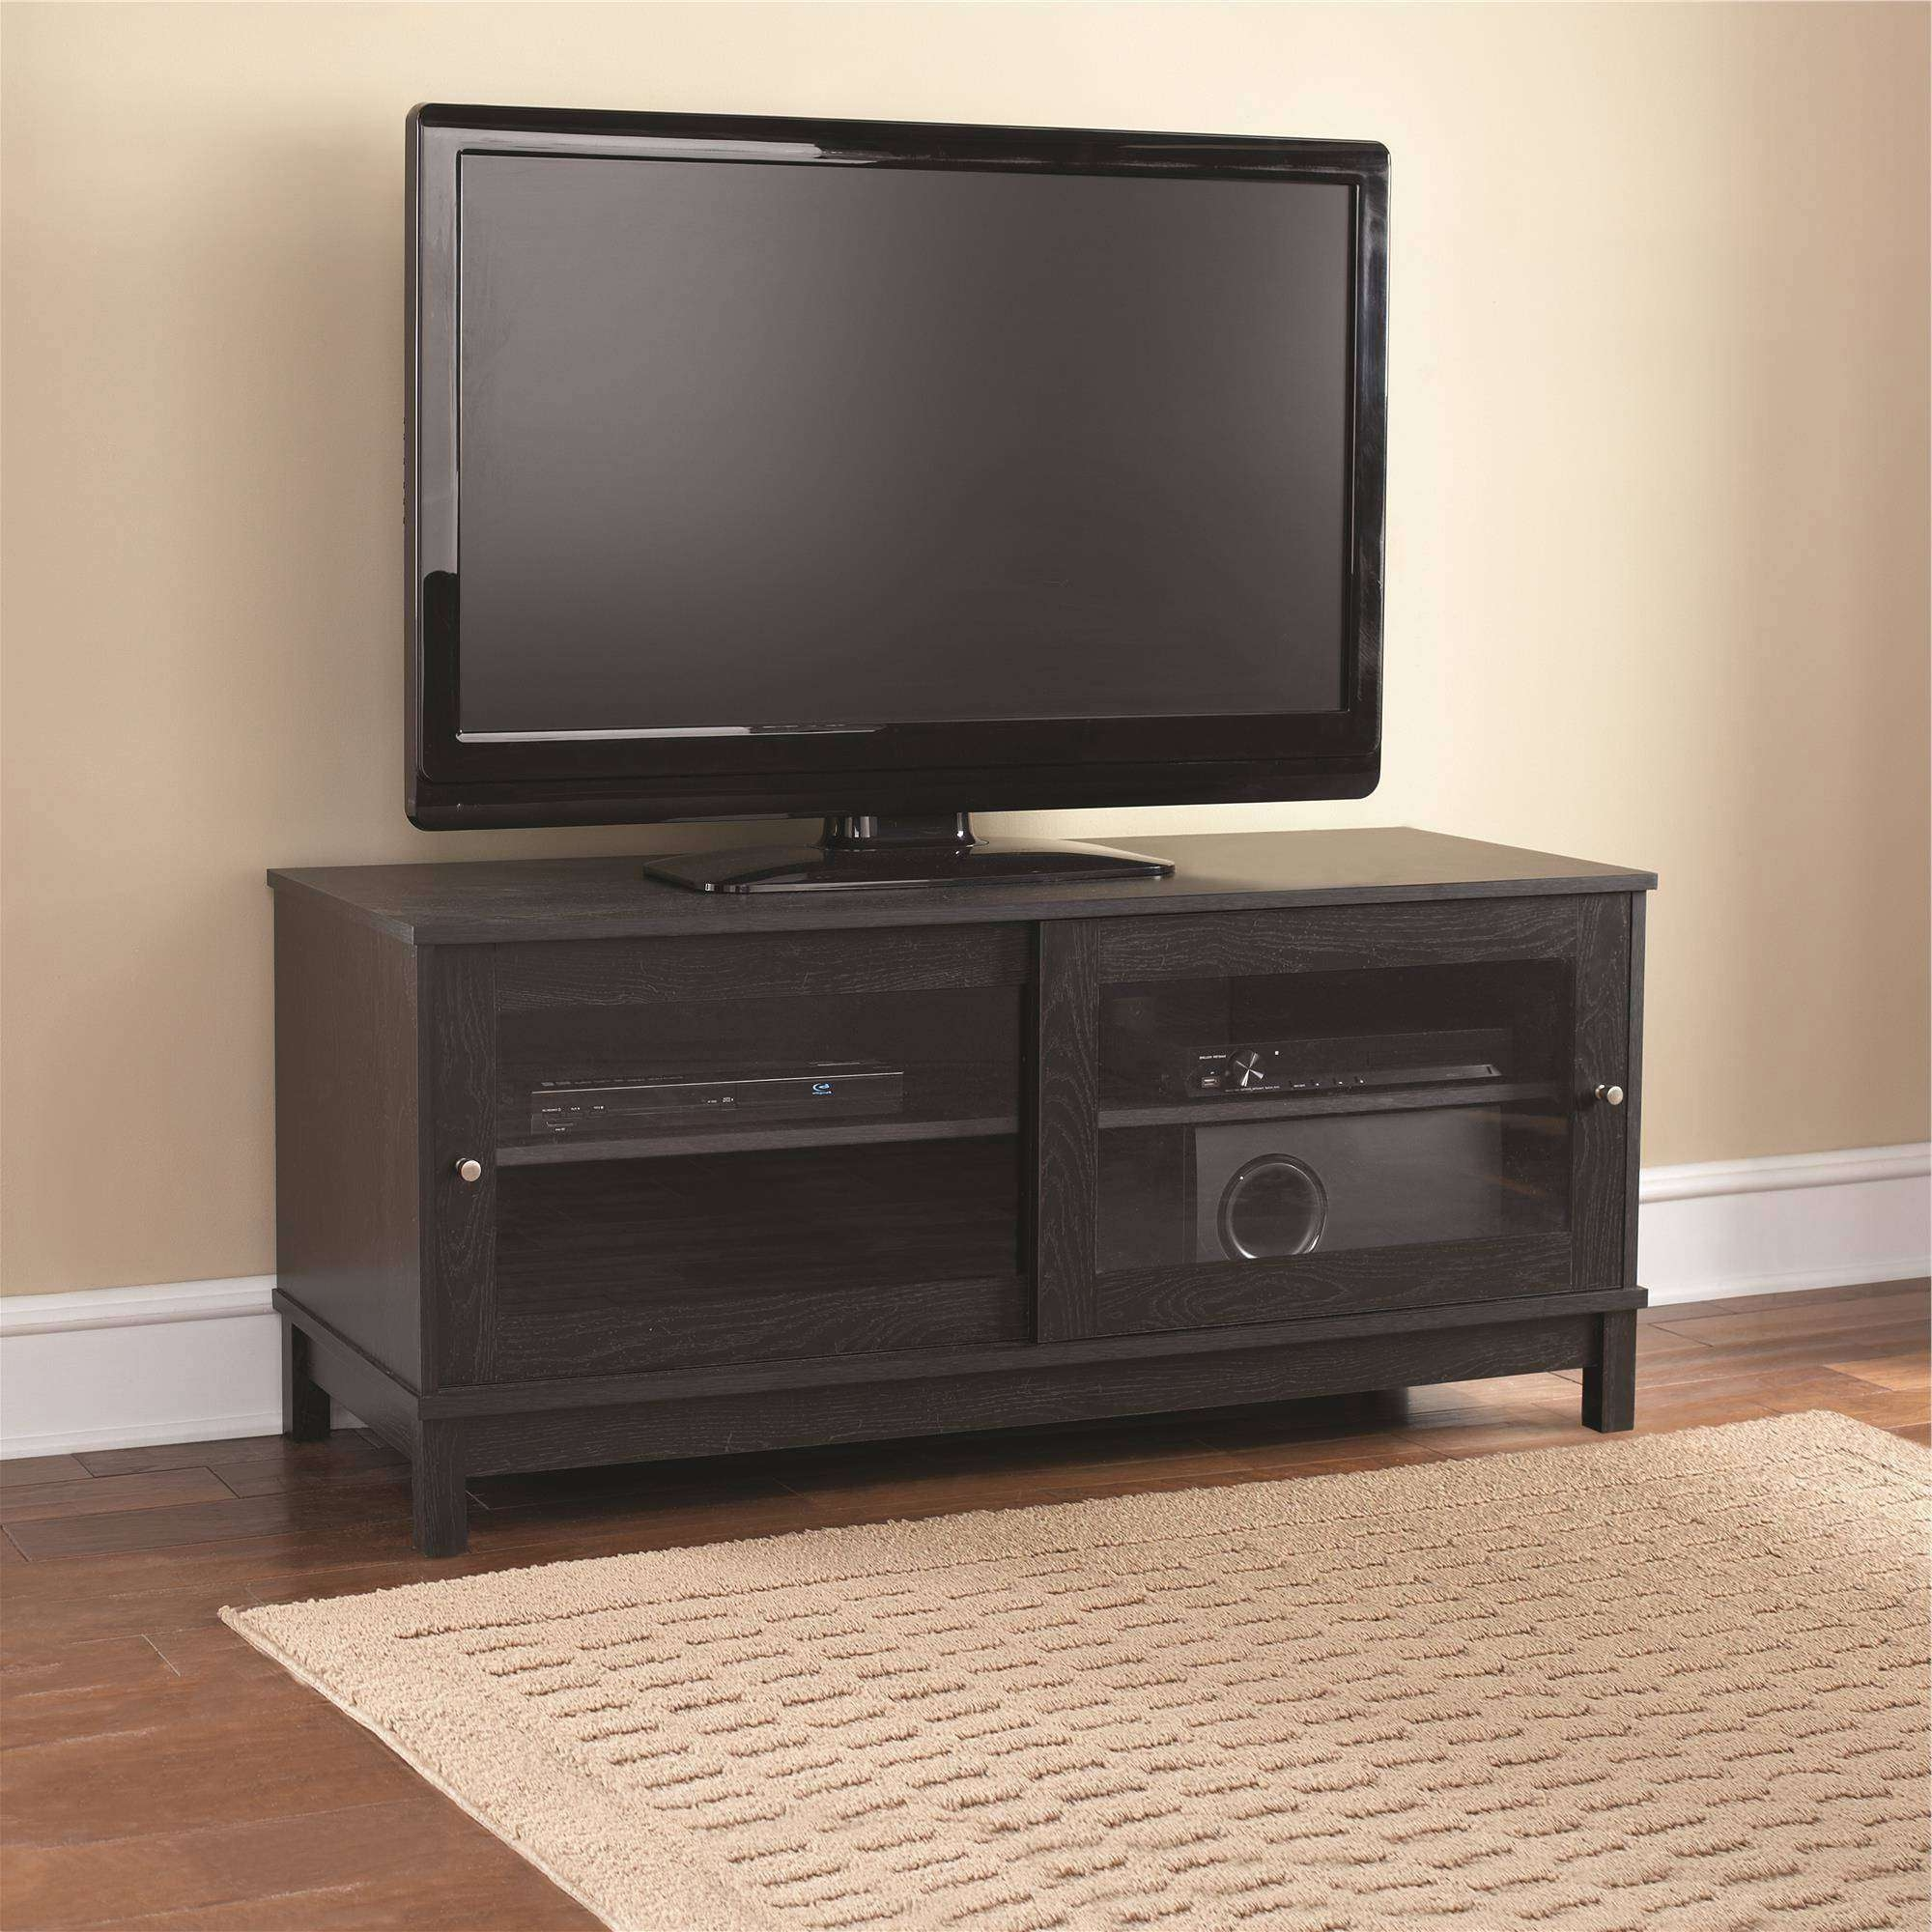 Unique Tv Stands 55 Inch Flat Screen 86 About Remodel Simple Home Regarding Unique Tv Stands For Flat Screens (View 13 of 20)